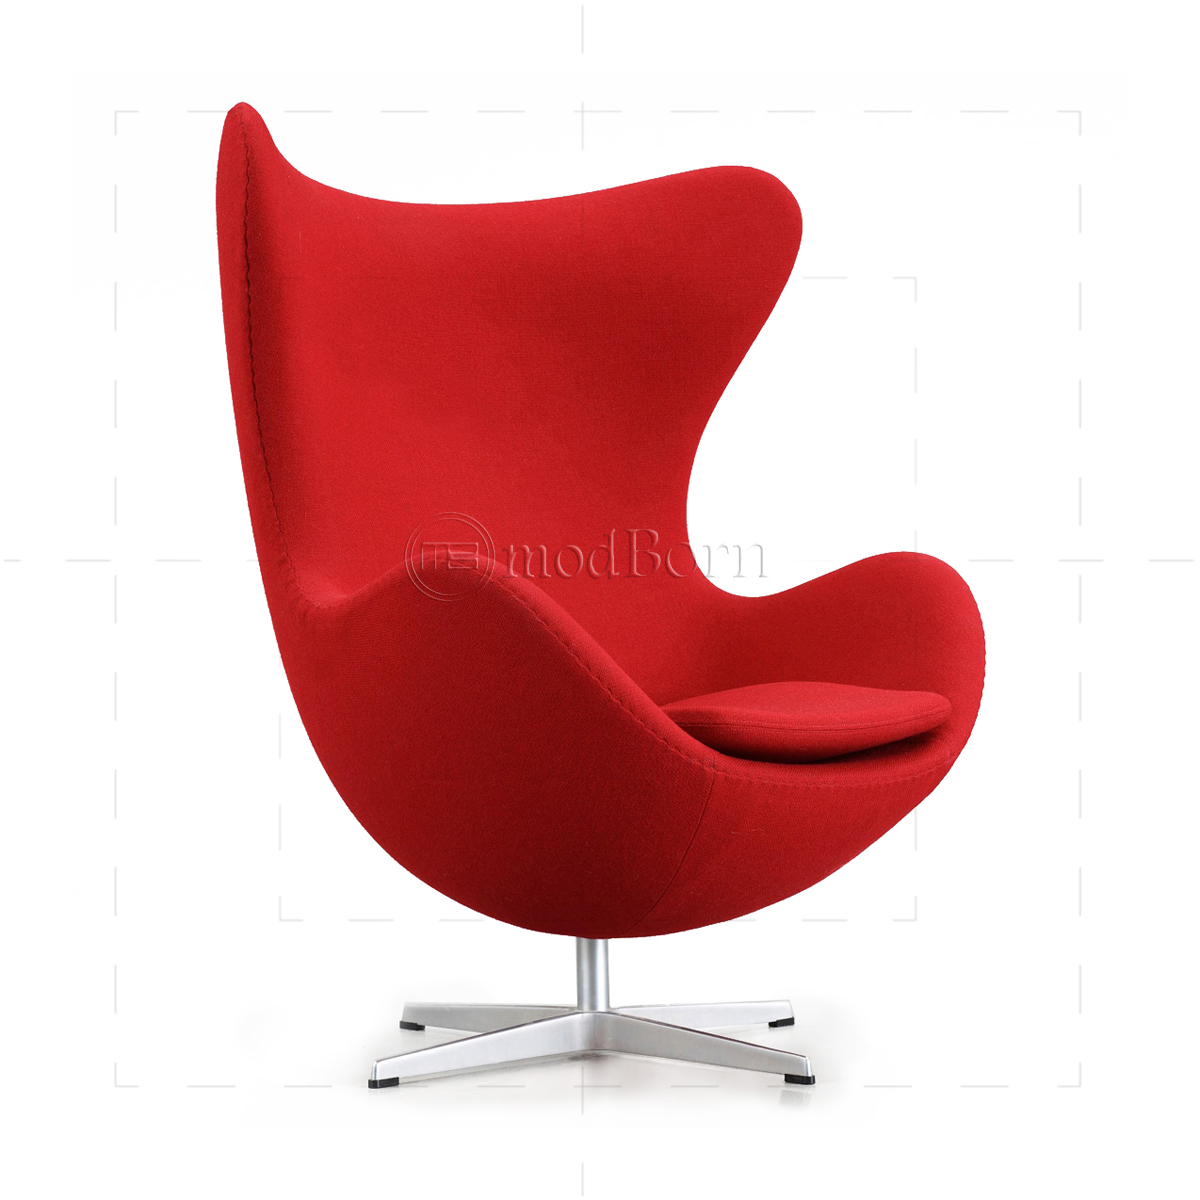 Arne jacobsen style egg cashmere wool chair red replica for Arne jacobsen stehlampe replica